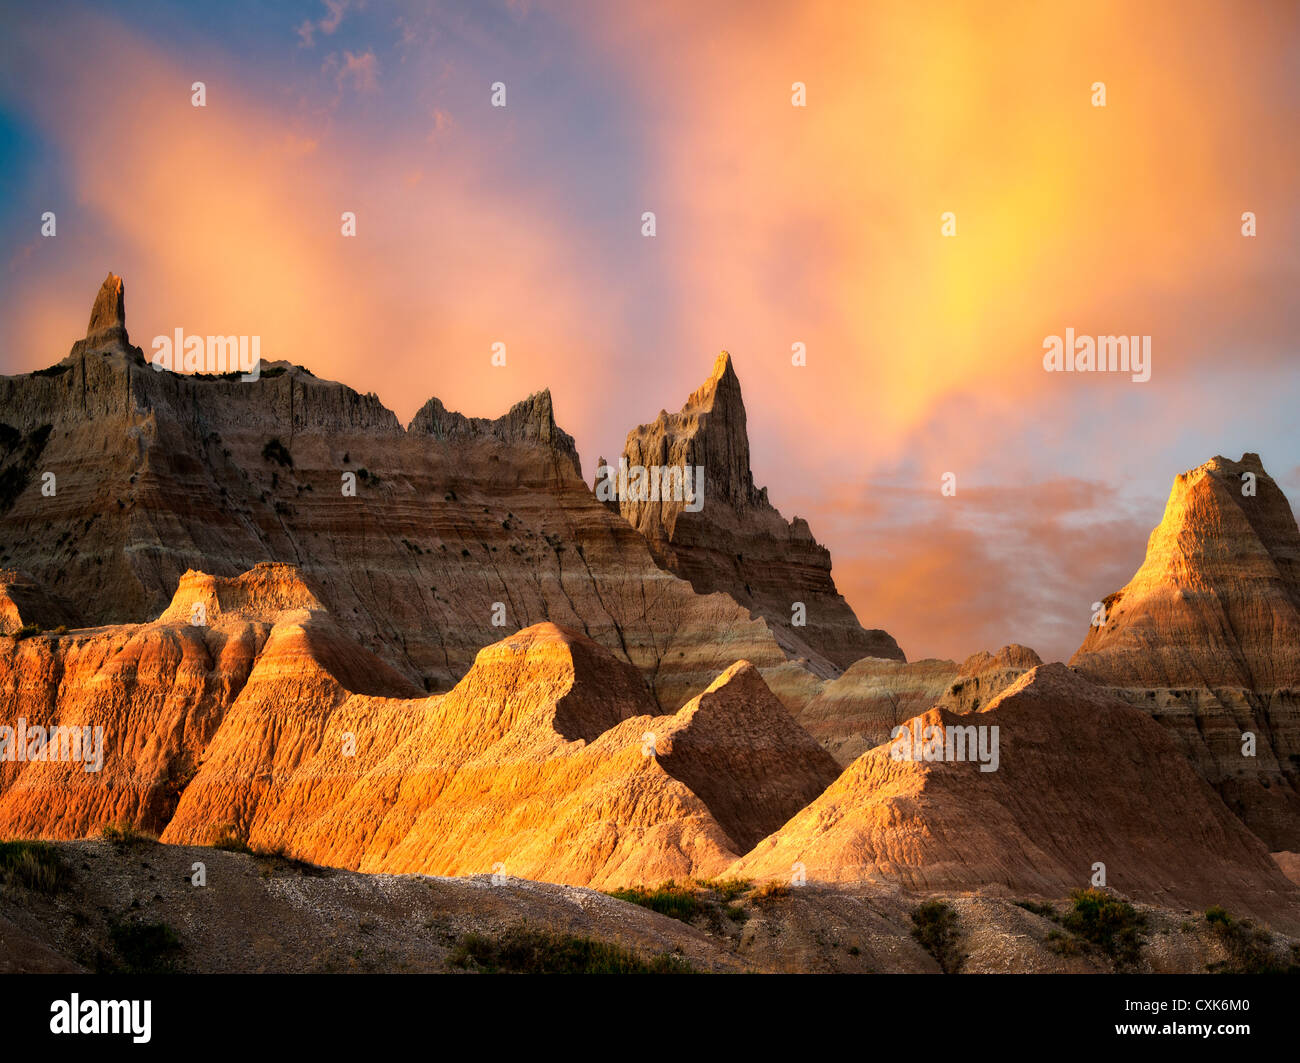 Des formations rocheuses érodées dans Badlands National Park (Dakota du Sud). Photo Stock